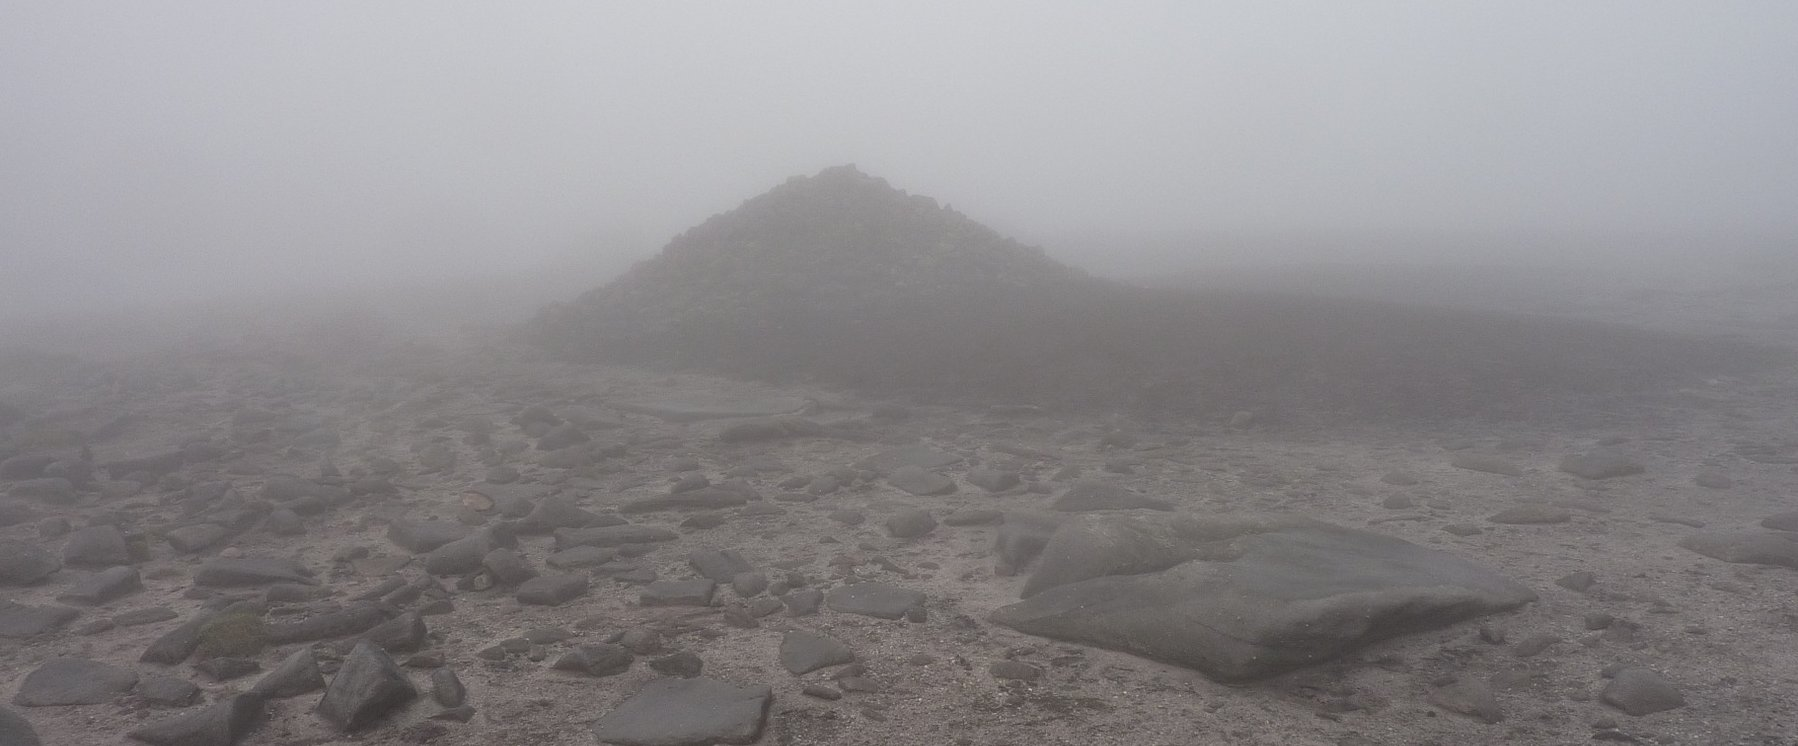 Crossing Kinder Low isn't easy in the best of weather